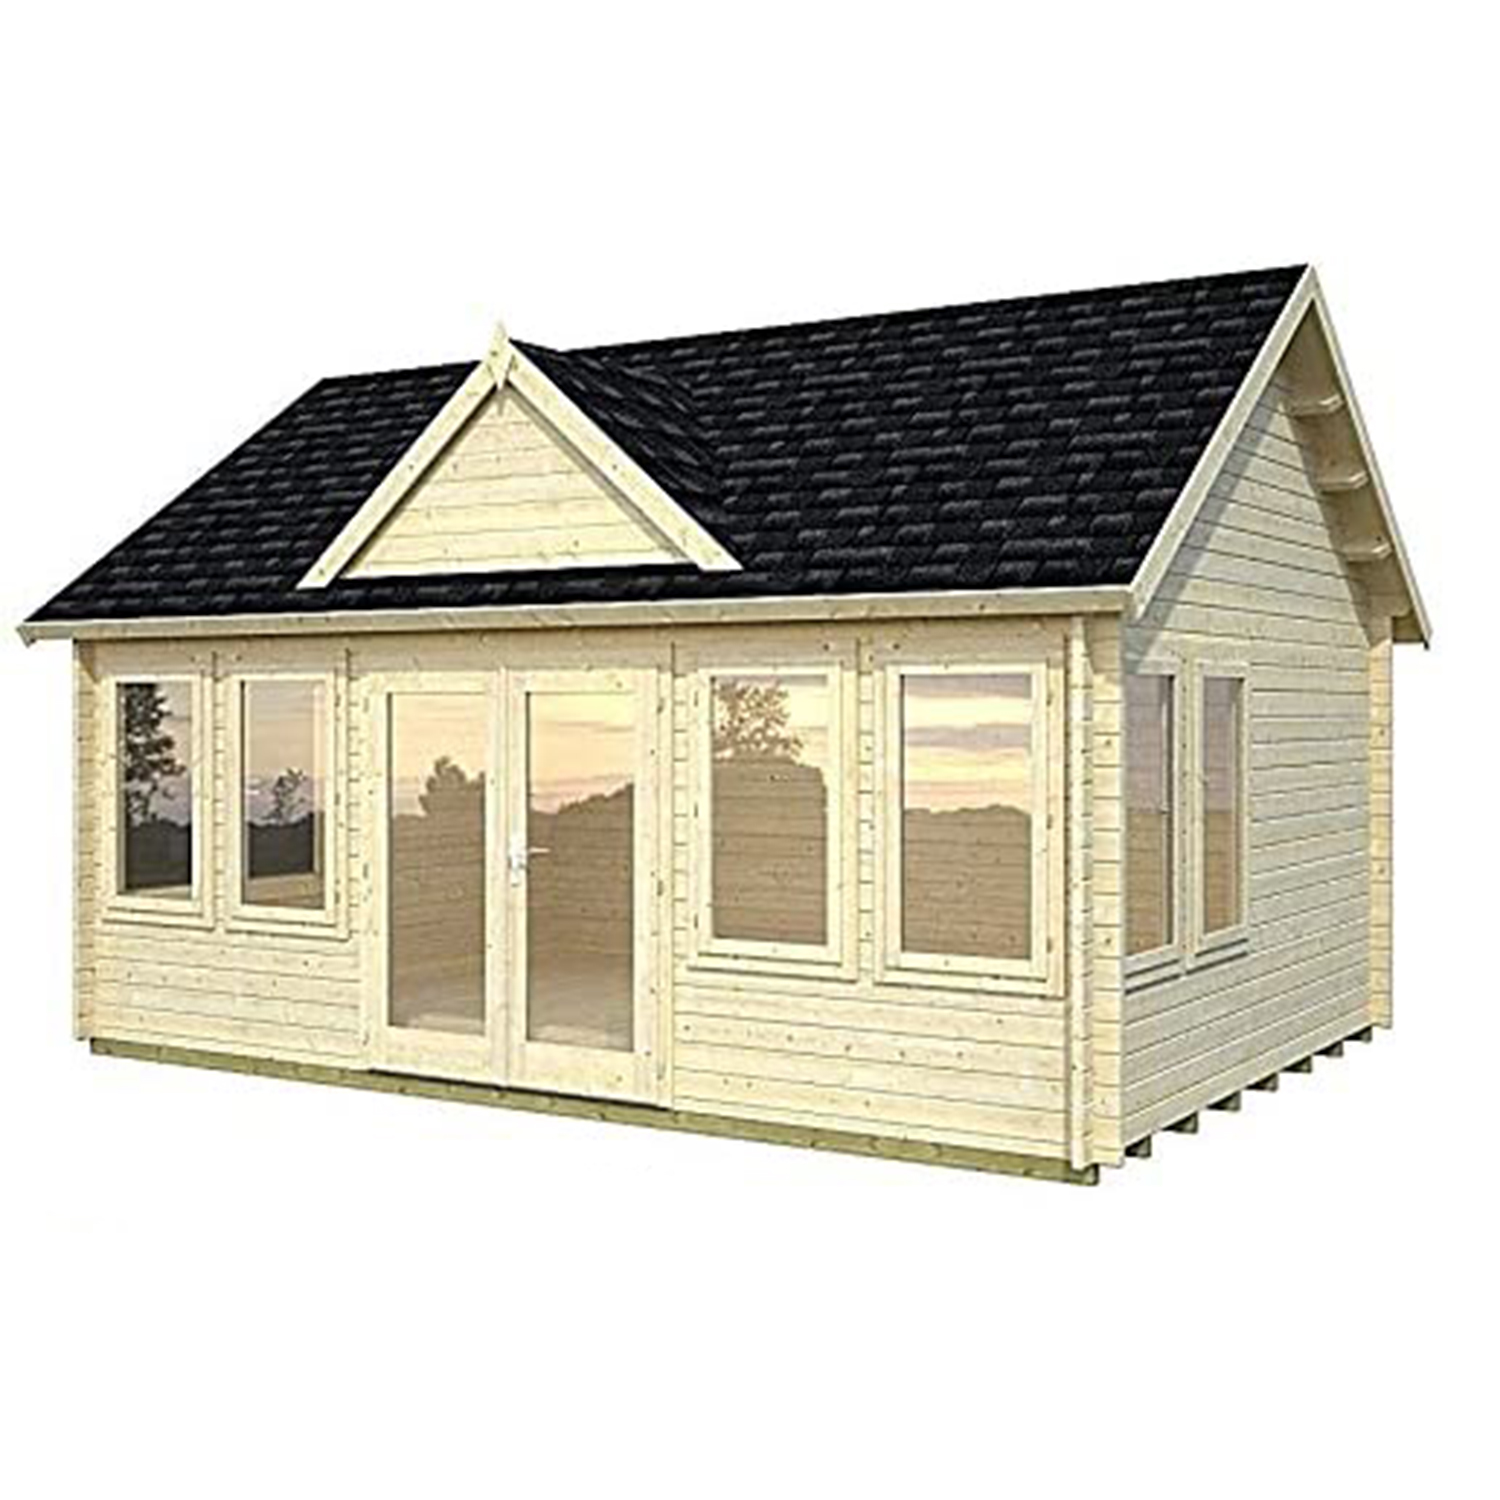 Allwood Claudia | 209 SQF Cabin Kit, Garden House